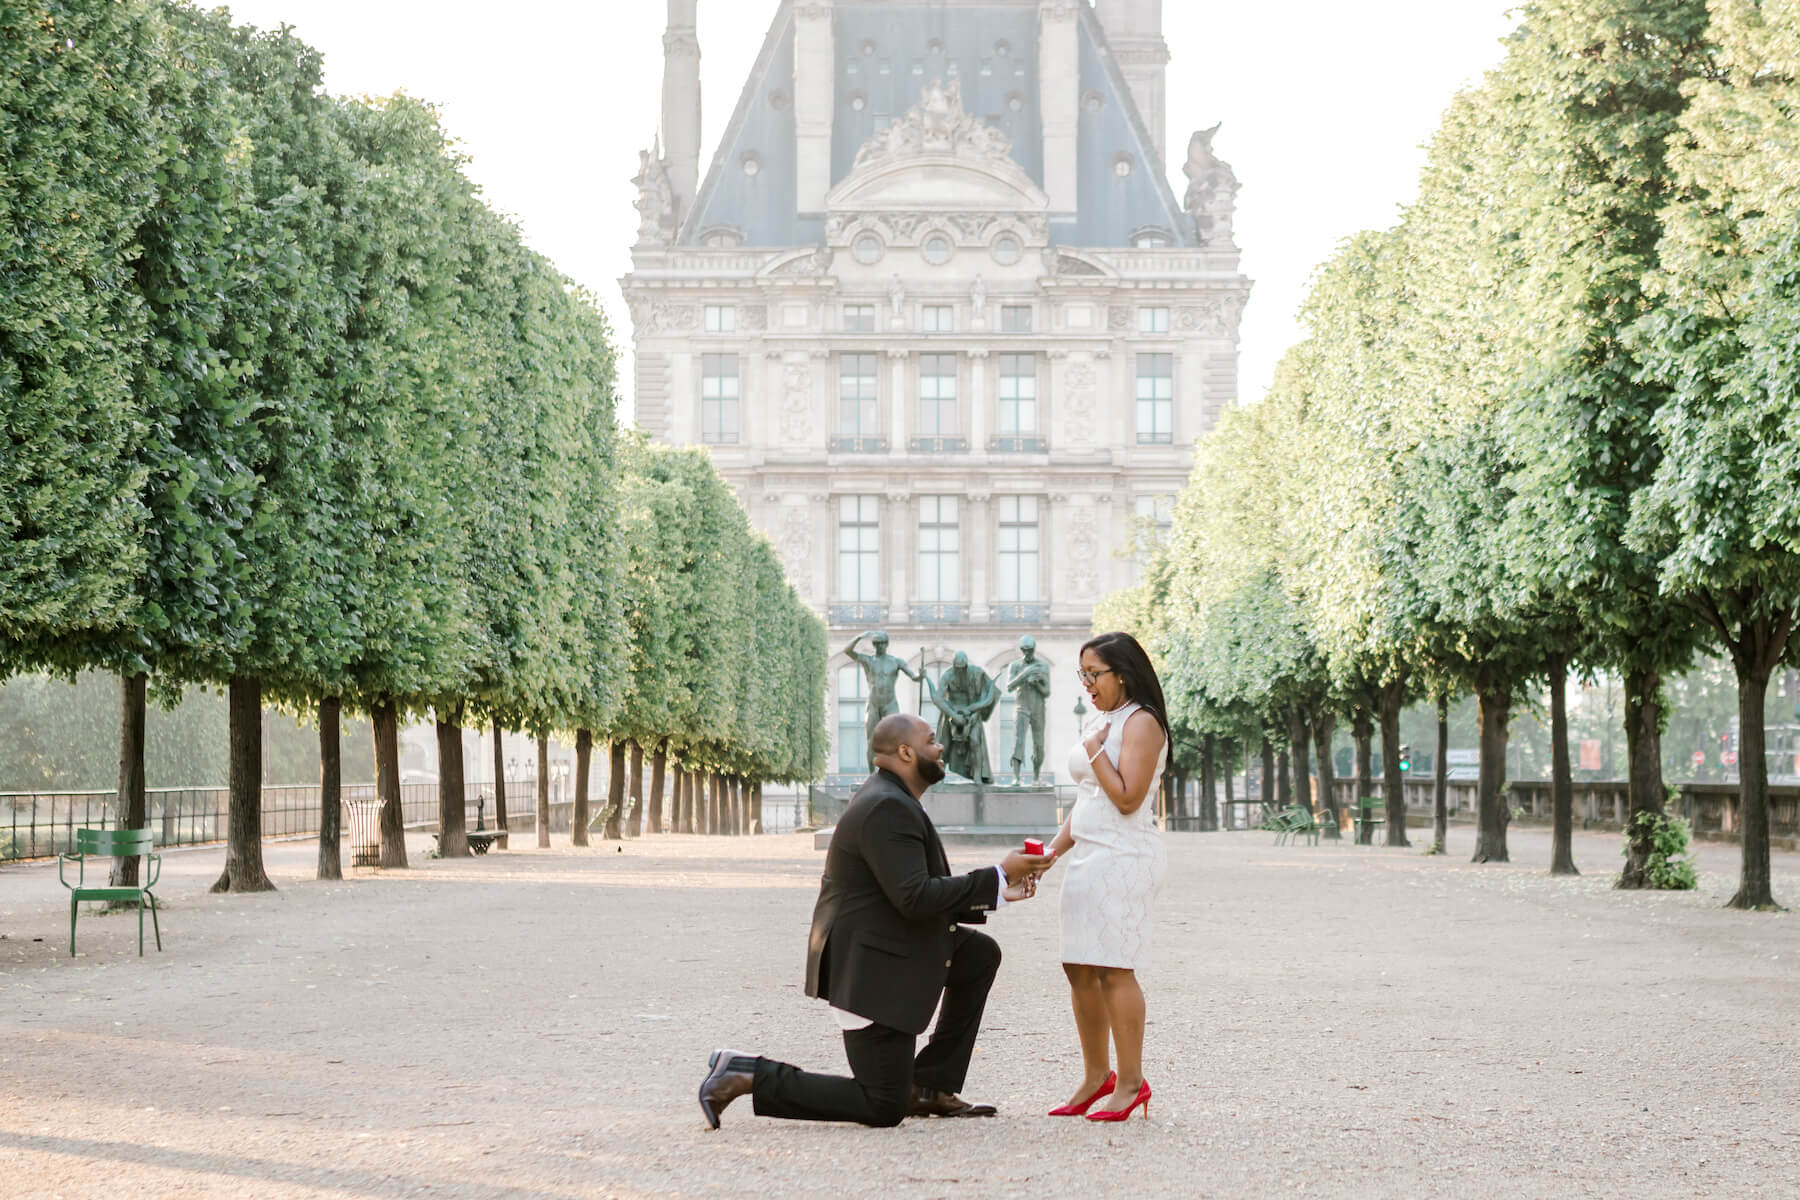 the man is on one knee proposing to the woman in Paris, both are wearing formal attire.